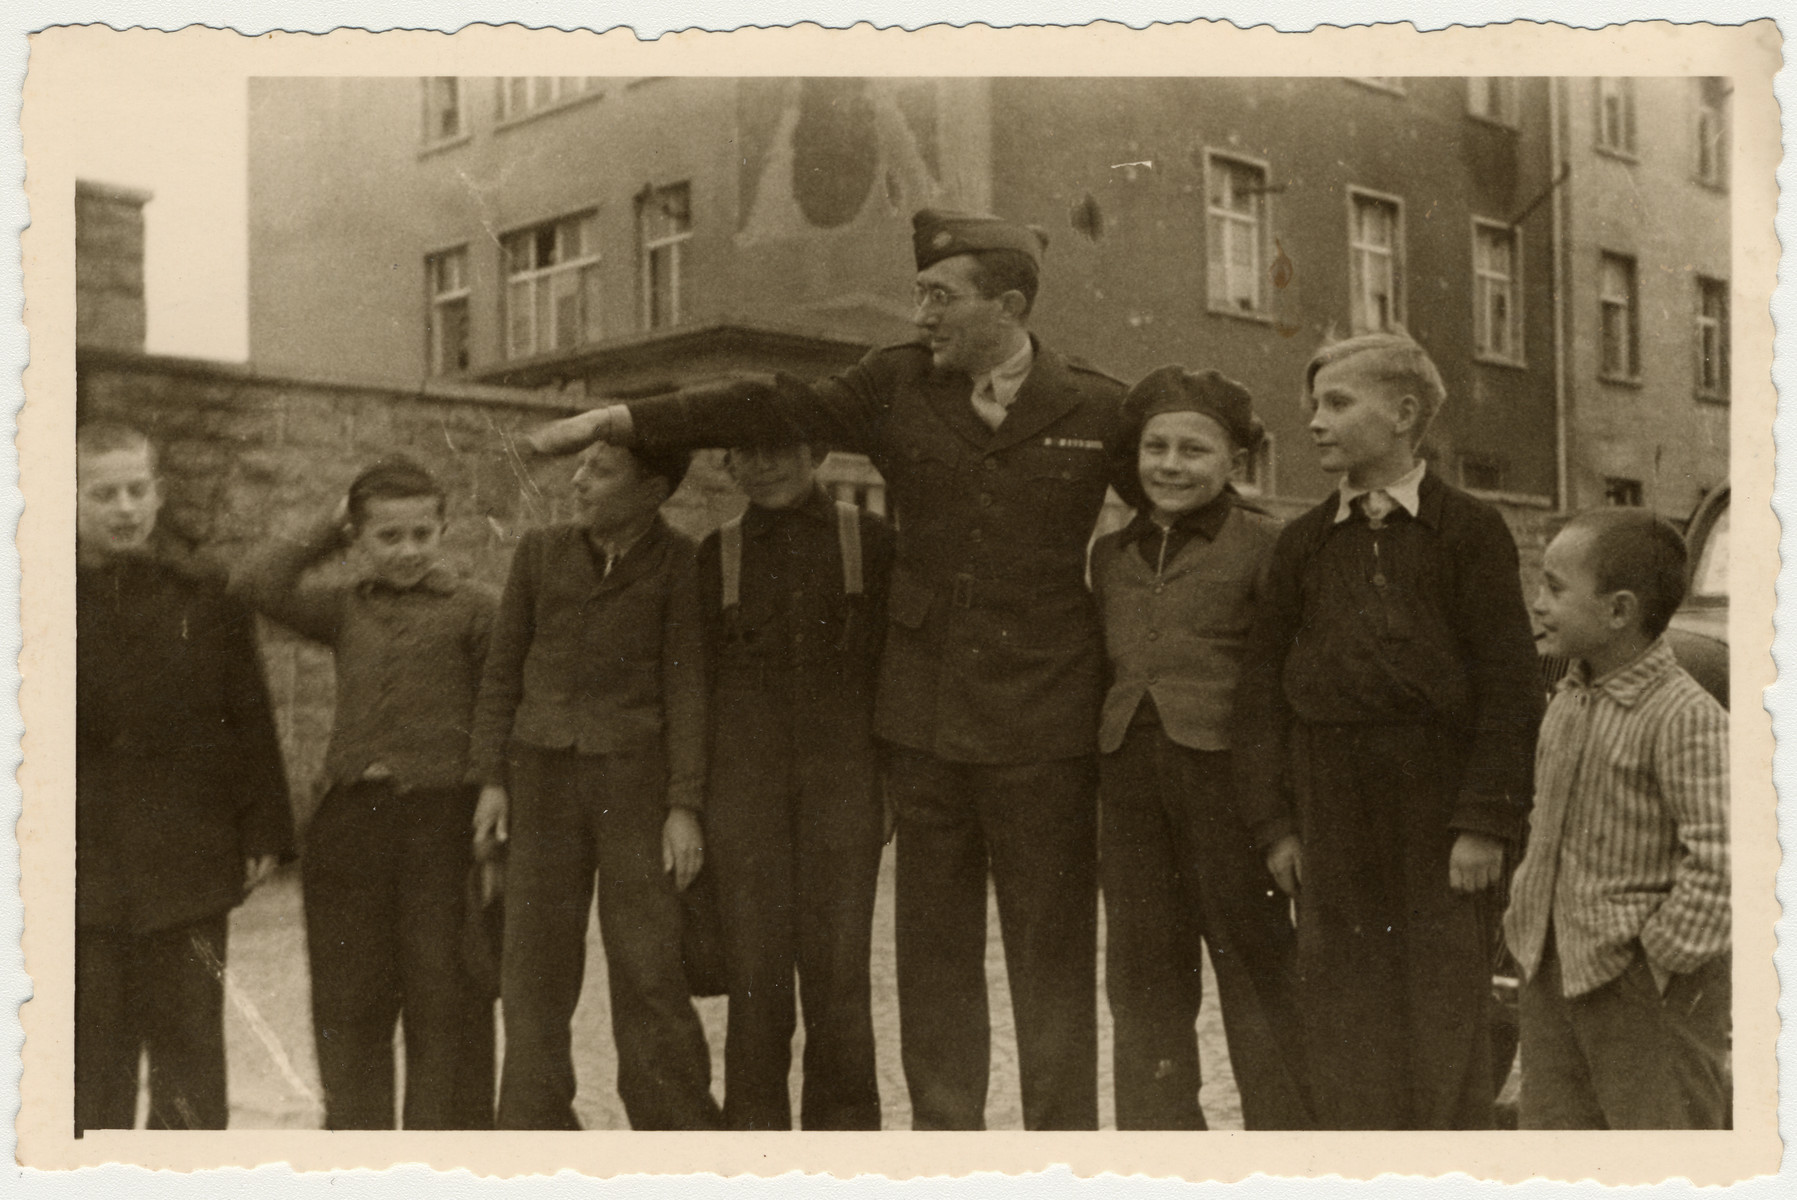 UNRRA director Mordecai Schwartz poses with a group of boys in the Aschaffenburg displaced persons' camp.